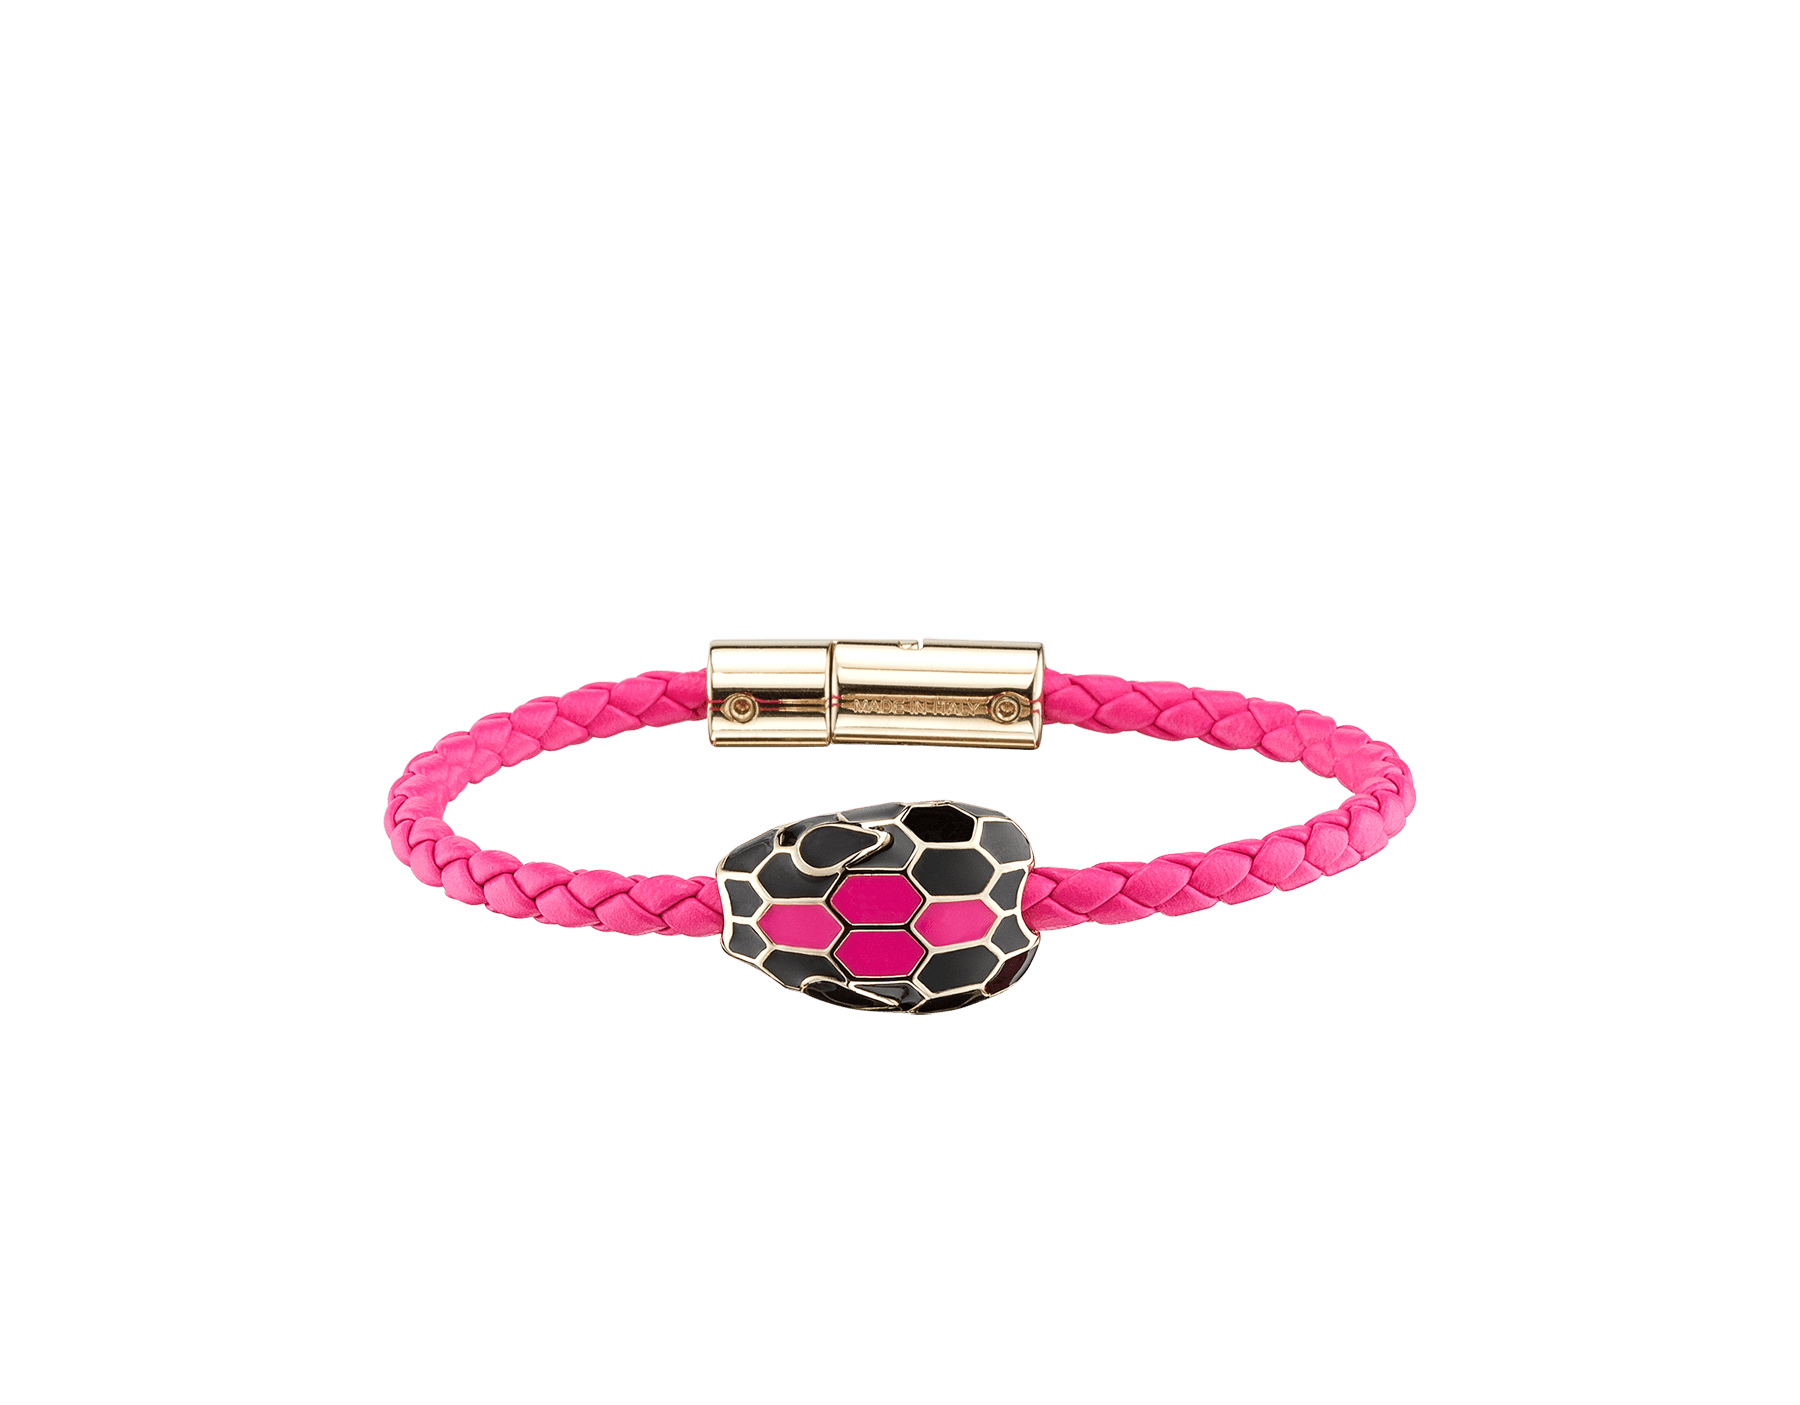 Serpenti Forever braid bracelet in flash amethyst woven calf leather with an iconic snake head décor in black and flash amethyst enamel. SerpBraid-WCL-FA image 1